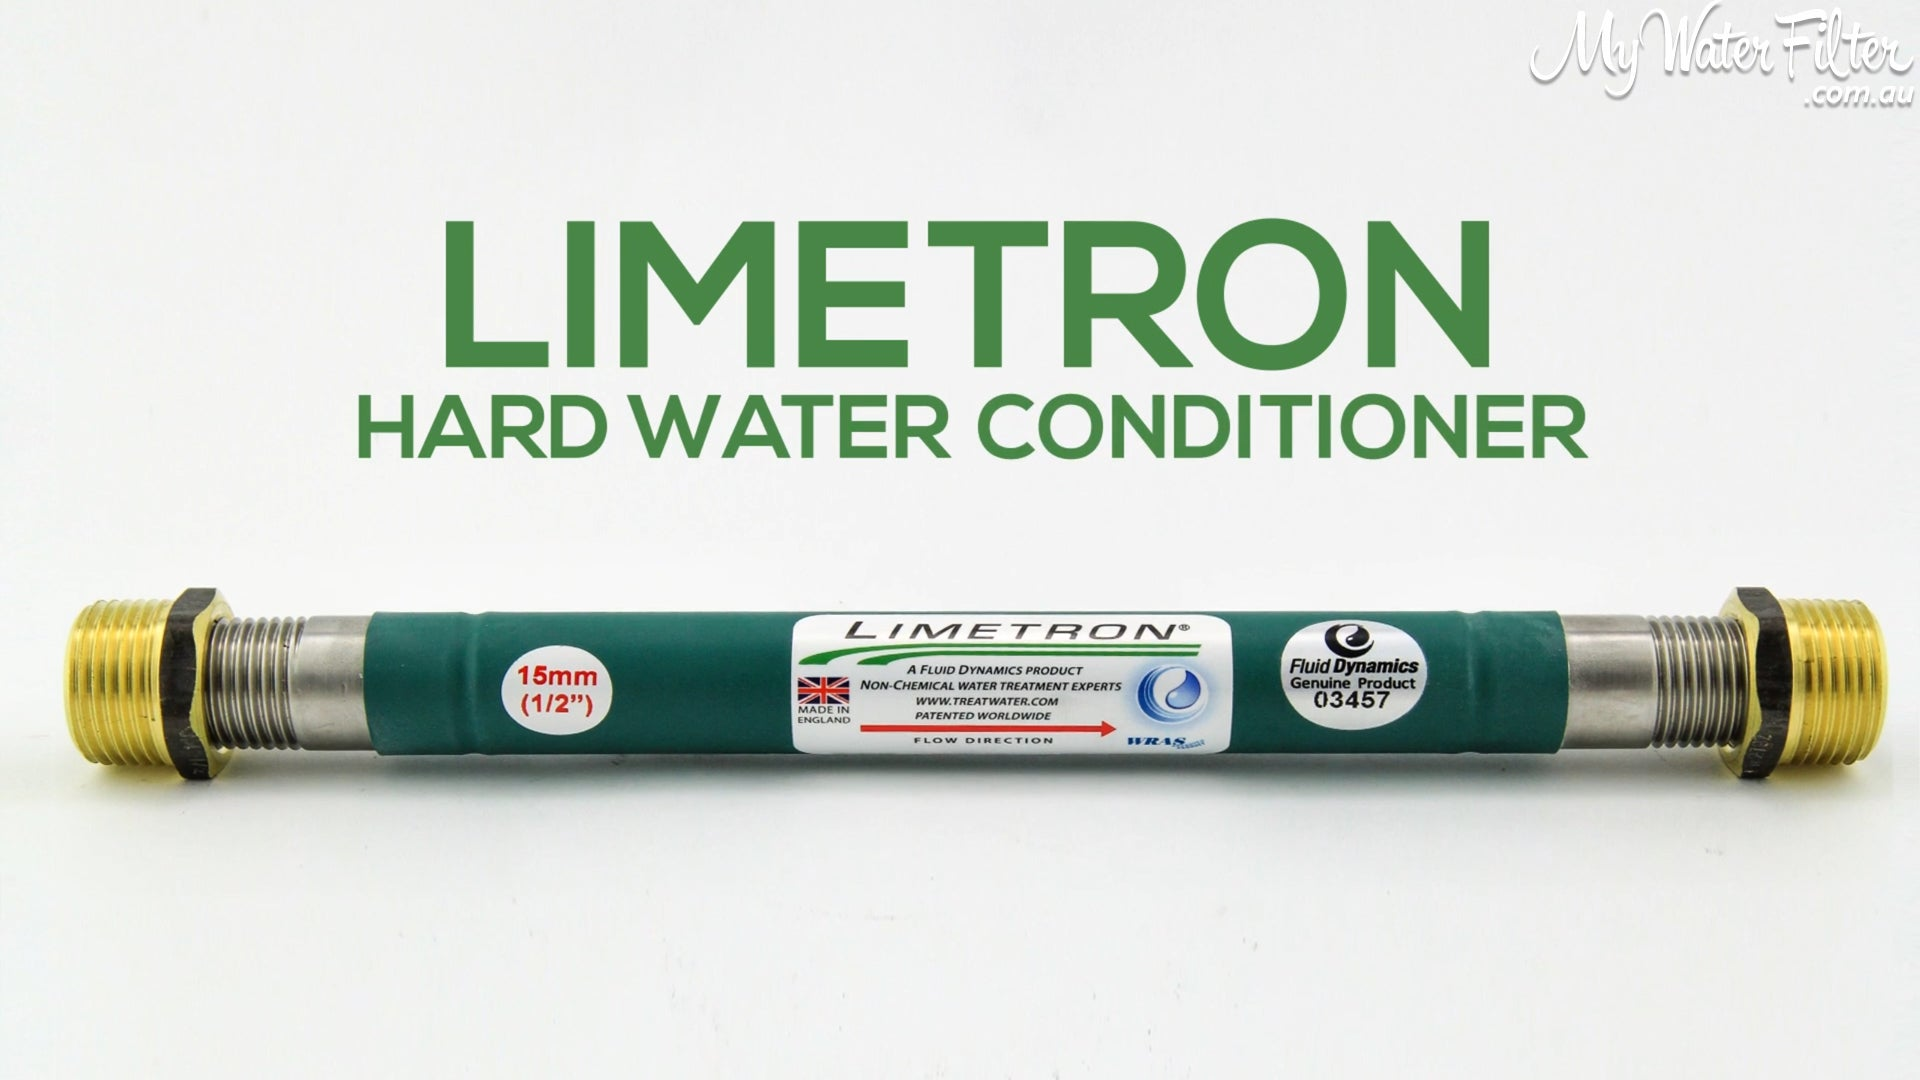 Limetron Hard Water Conditioner